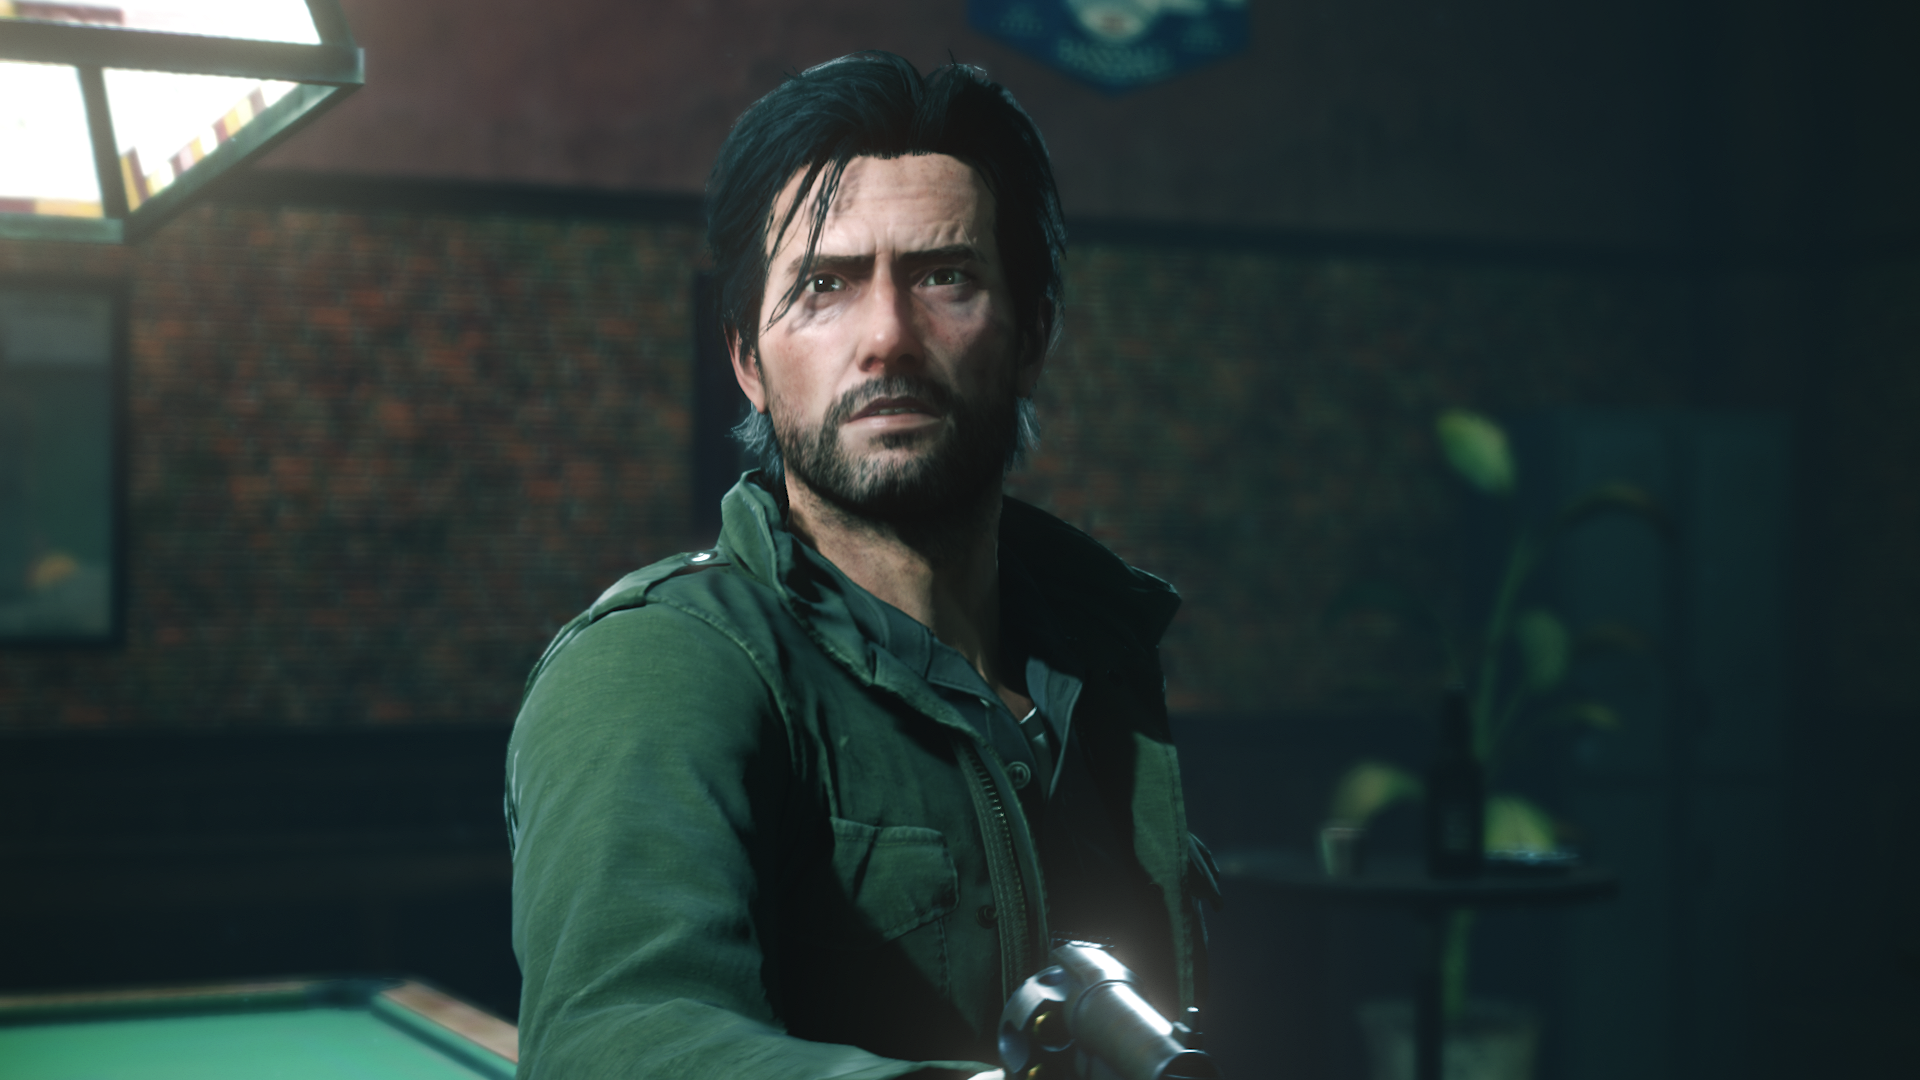 seb - Evil Within 2, the